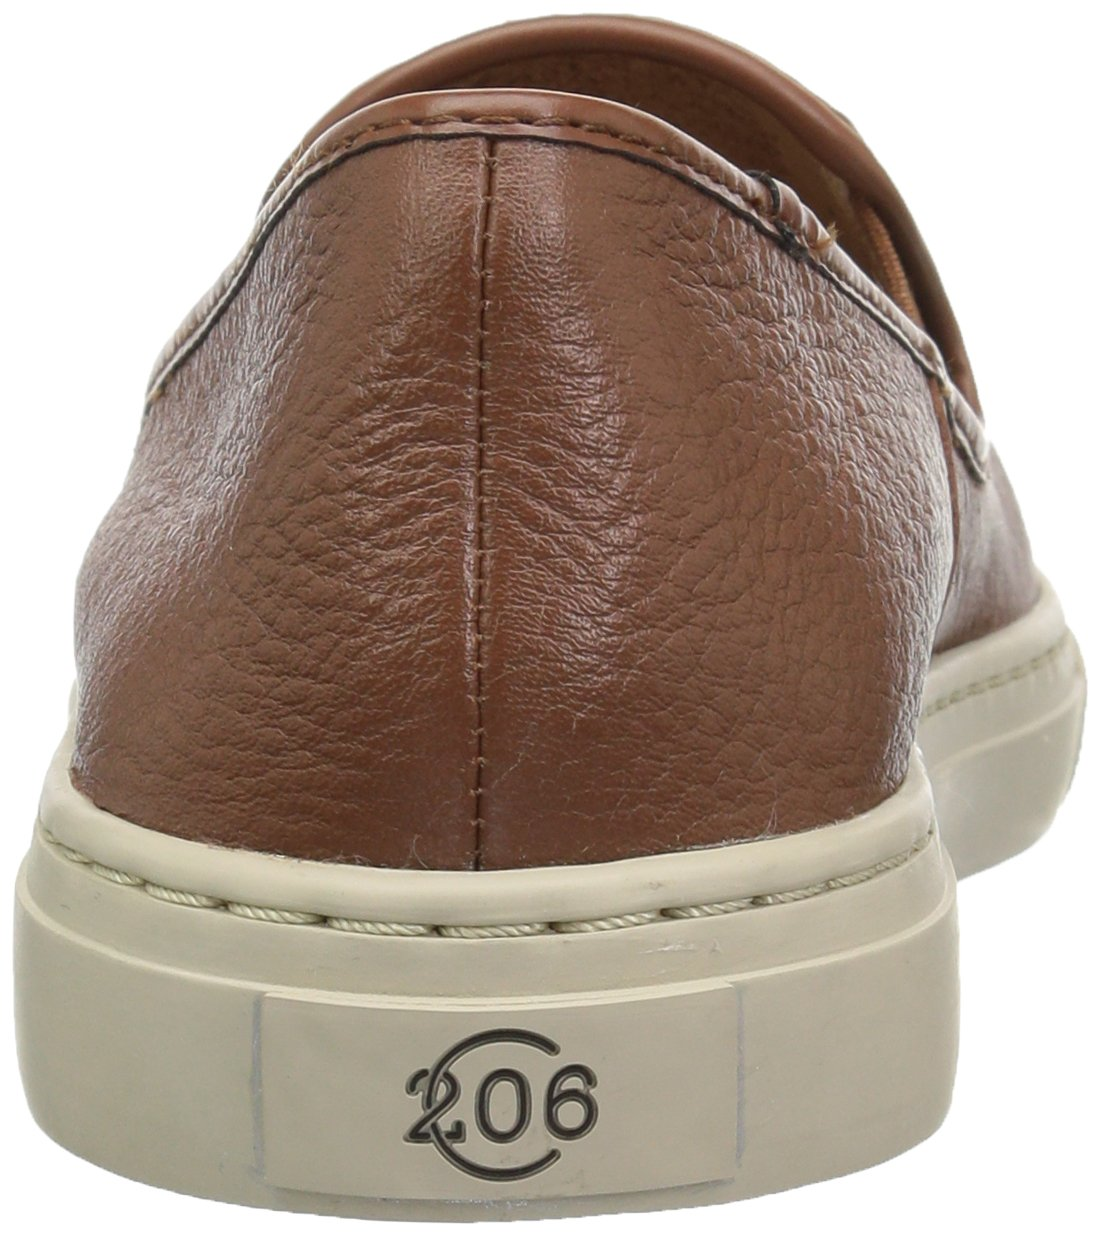 206 Collective Women's Cooper Perforated Slip-on Fashion Sneaker, Cognac Leather, 8.5 B US by 206 Collective (Image #2)